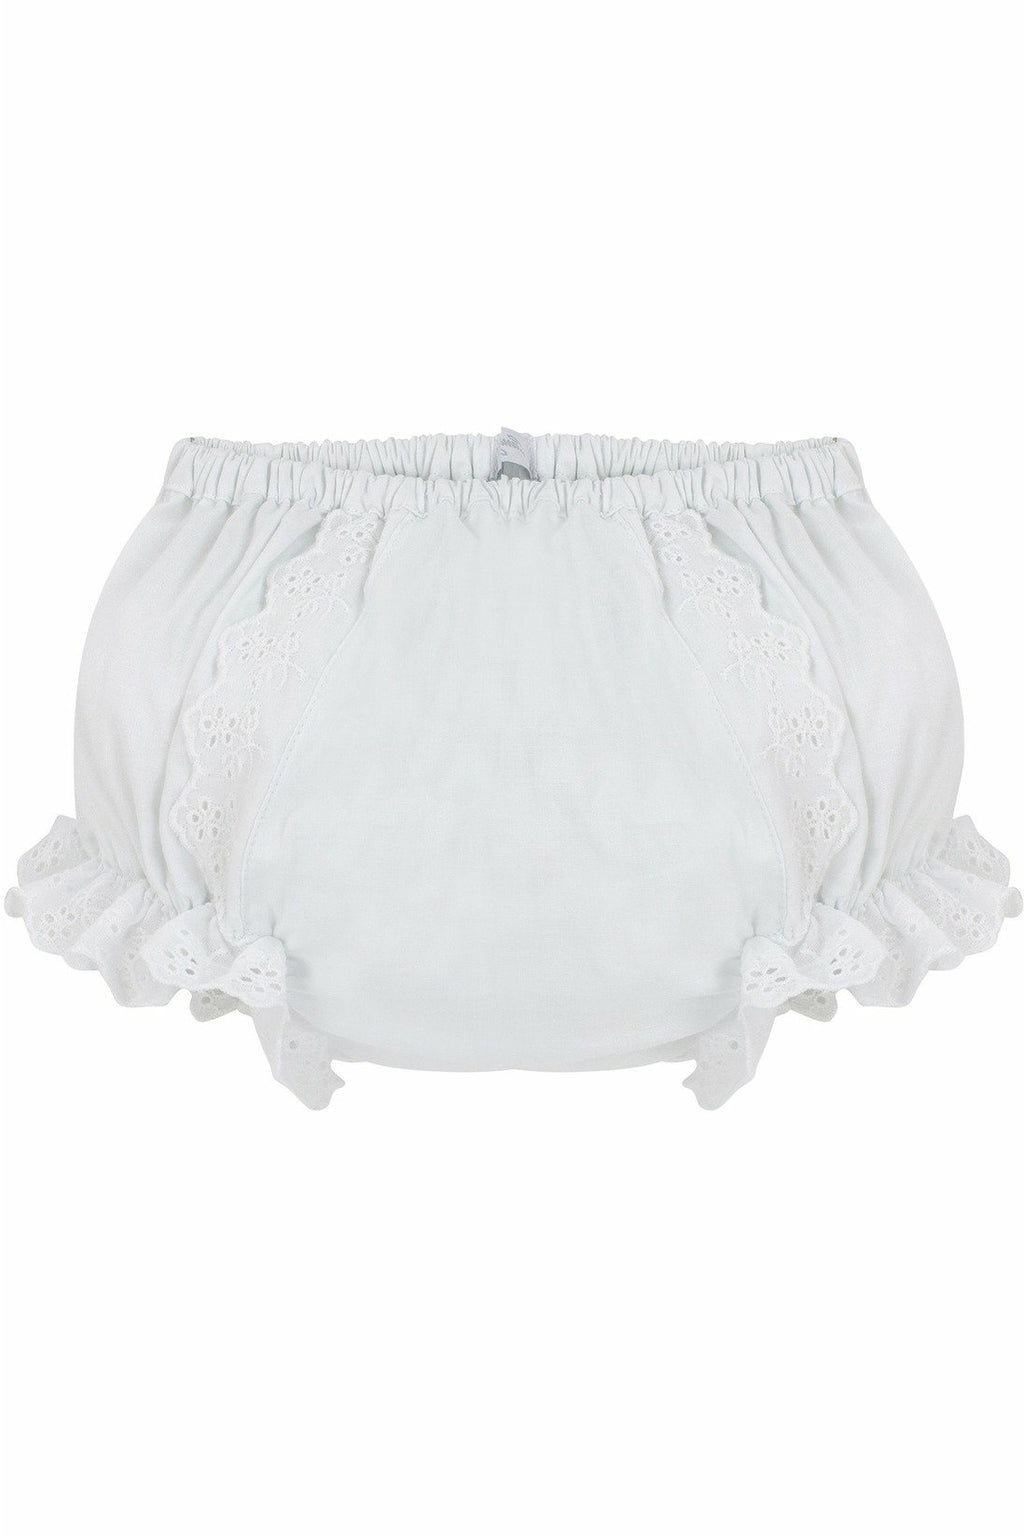 Baby Girls Cotton Diaper Covers - Ruffled White Flowers